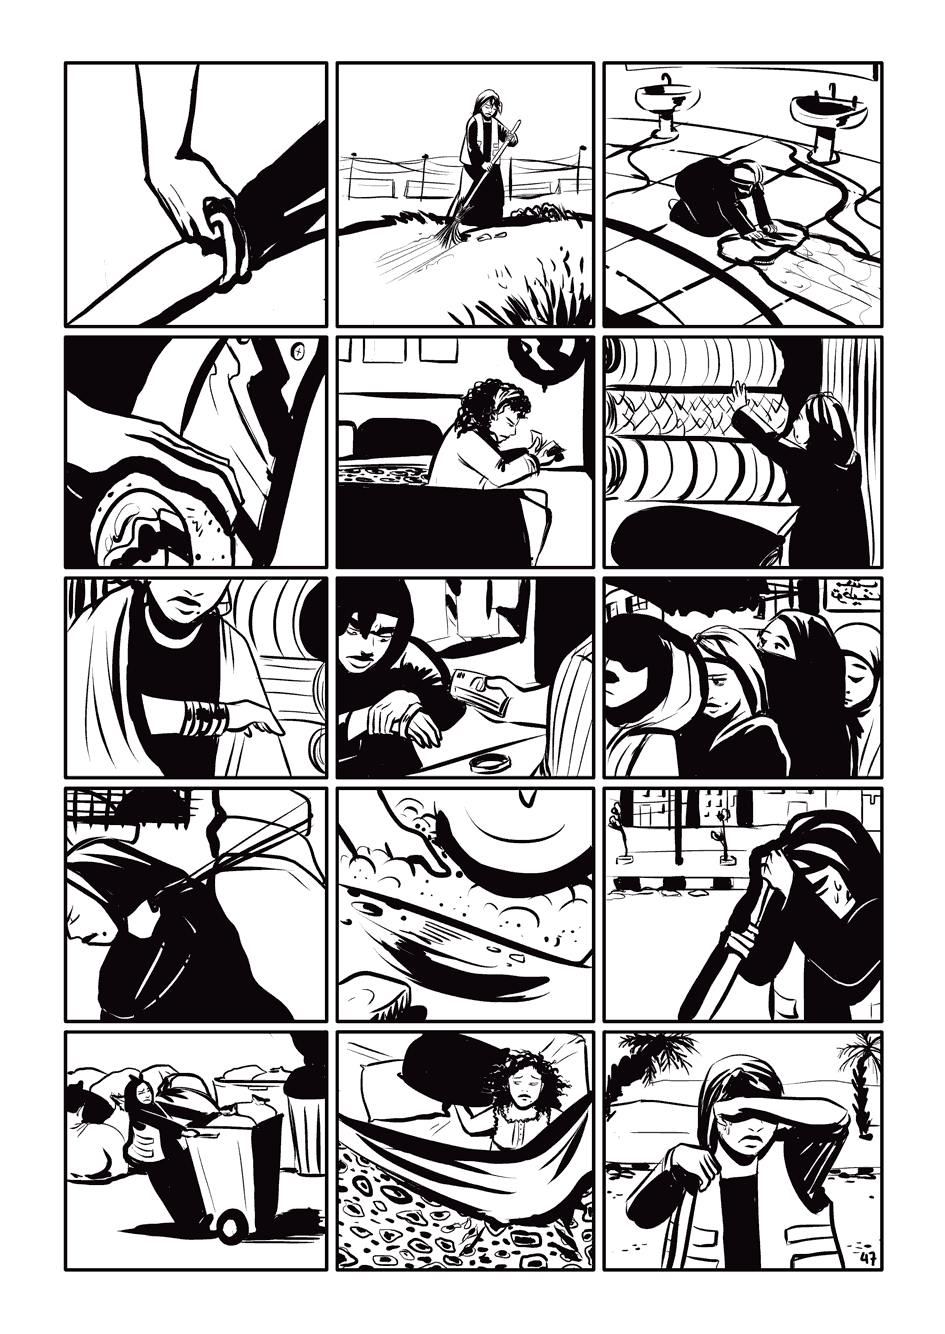 a page layout where, if you squint at the panels, they form the protagonist's husband face